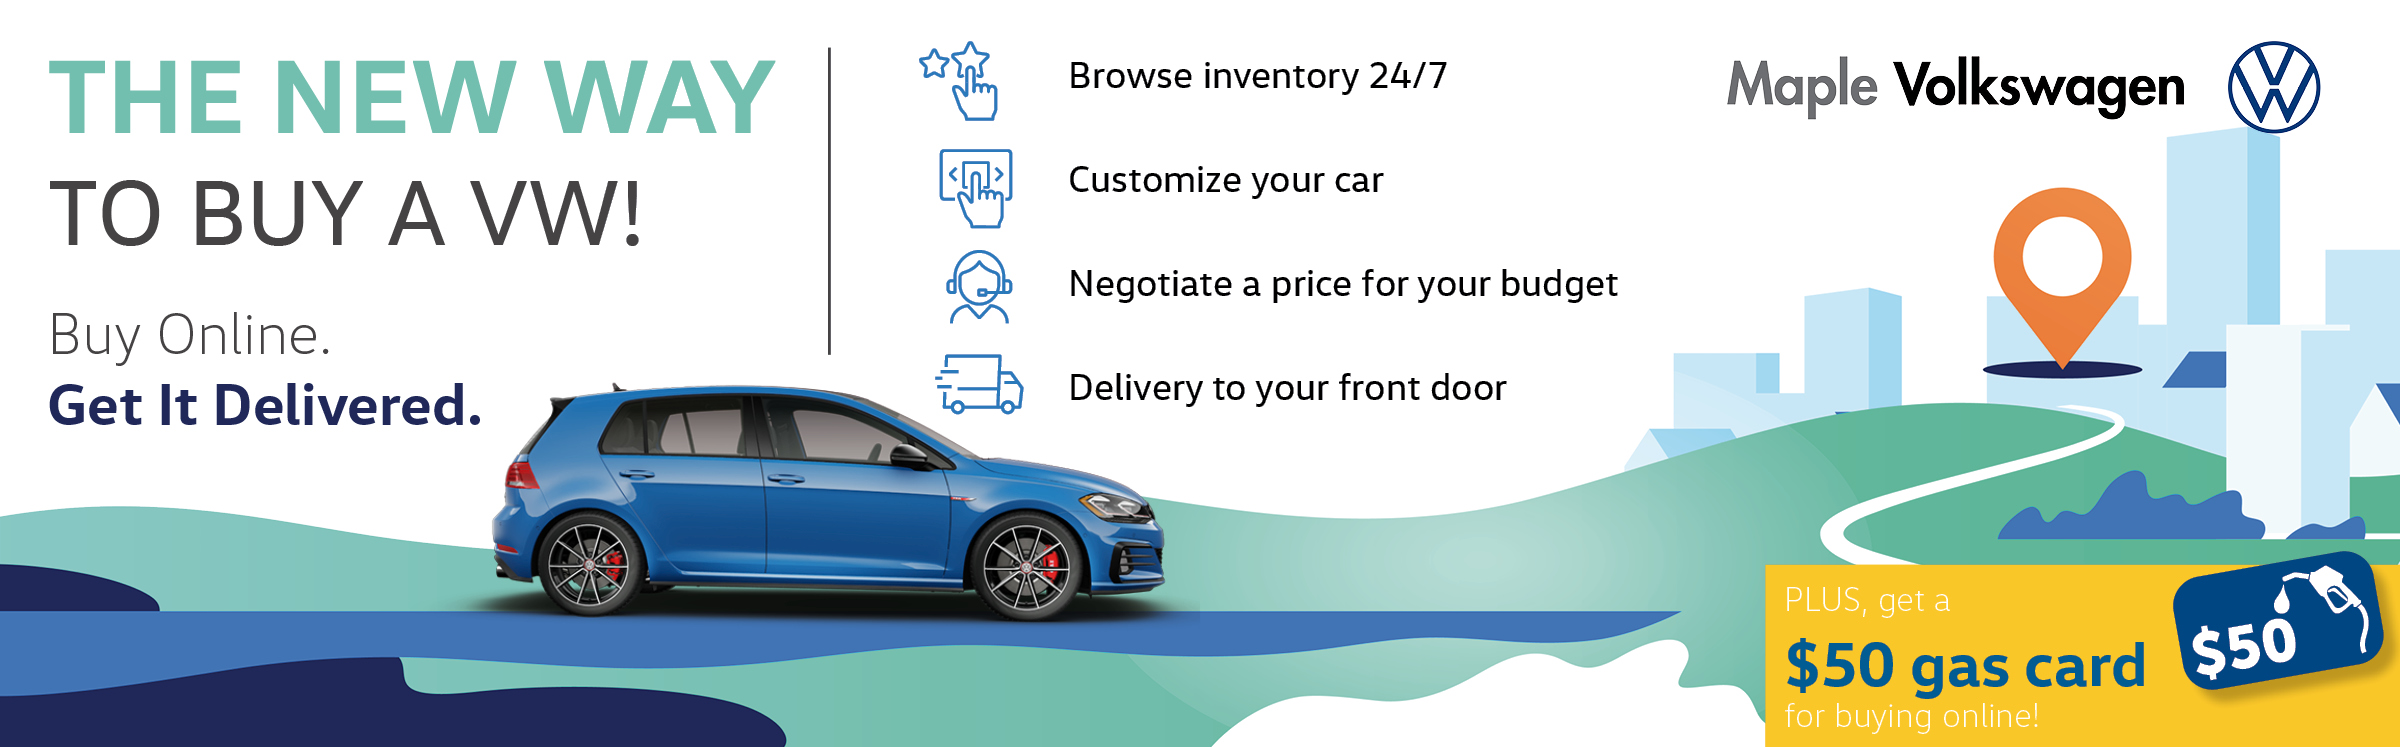 Buy Your Next Car Online with Maple VW